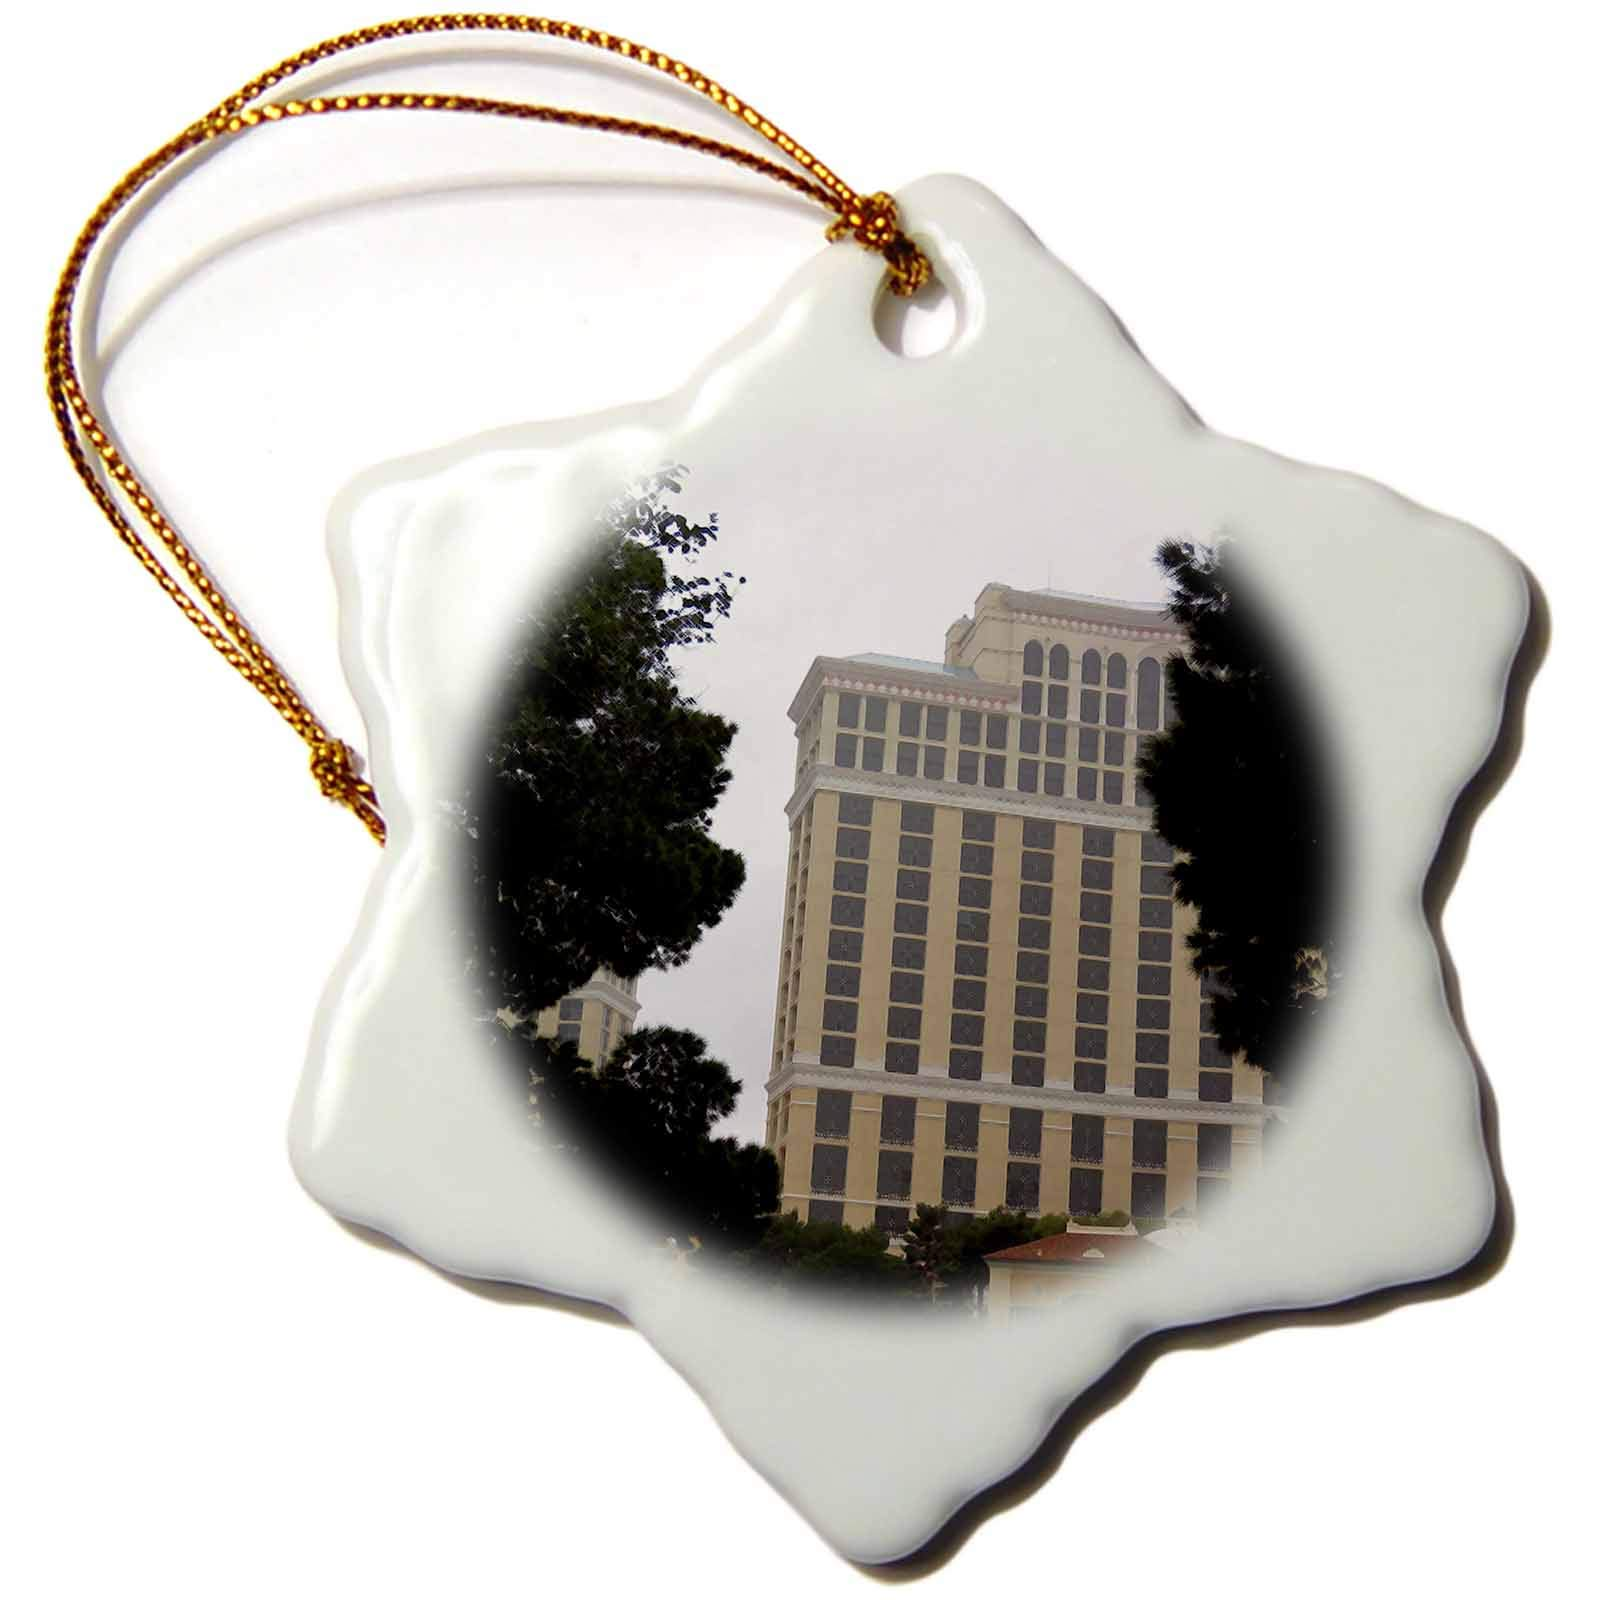 3dRose Jos Fauxtographee- Vegas Hotal with Trees - A Vegas Hotel That has Been Digitally Dry Brushed with Trees - 3 inch Snowflake Porcelain Ornament (ORN_291087_1)